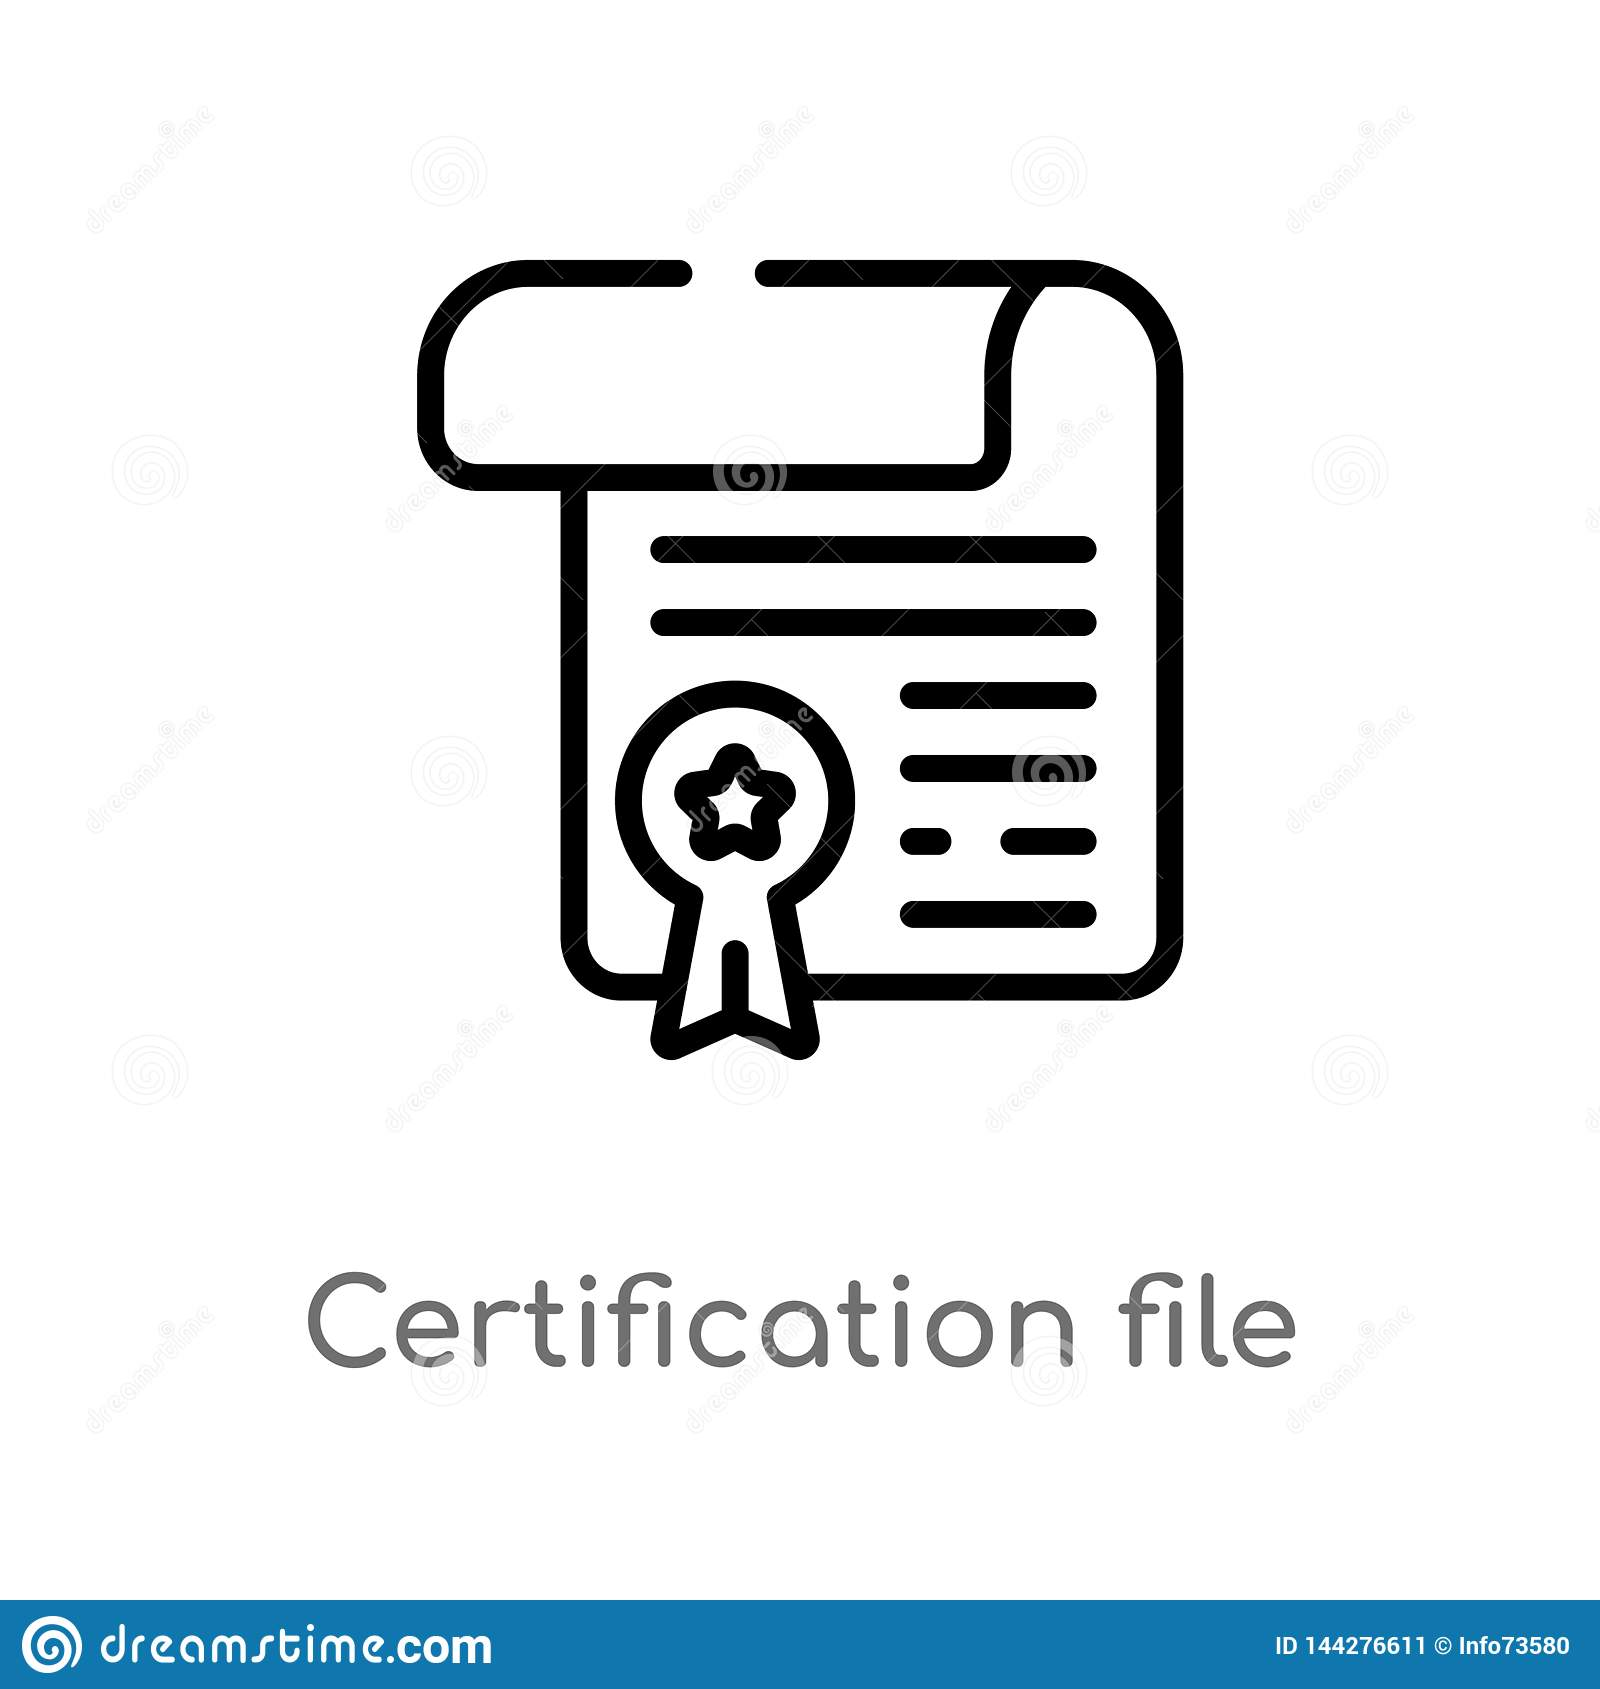 outline certification file vector icon. isolated black simple line element illustration from commerce and shopping concept.